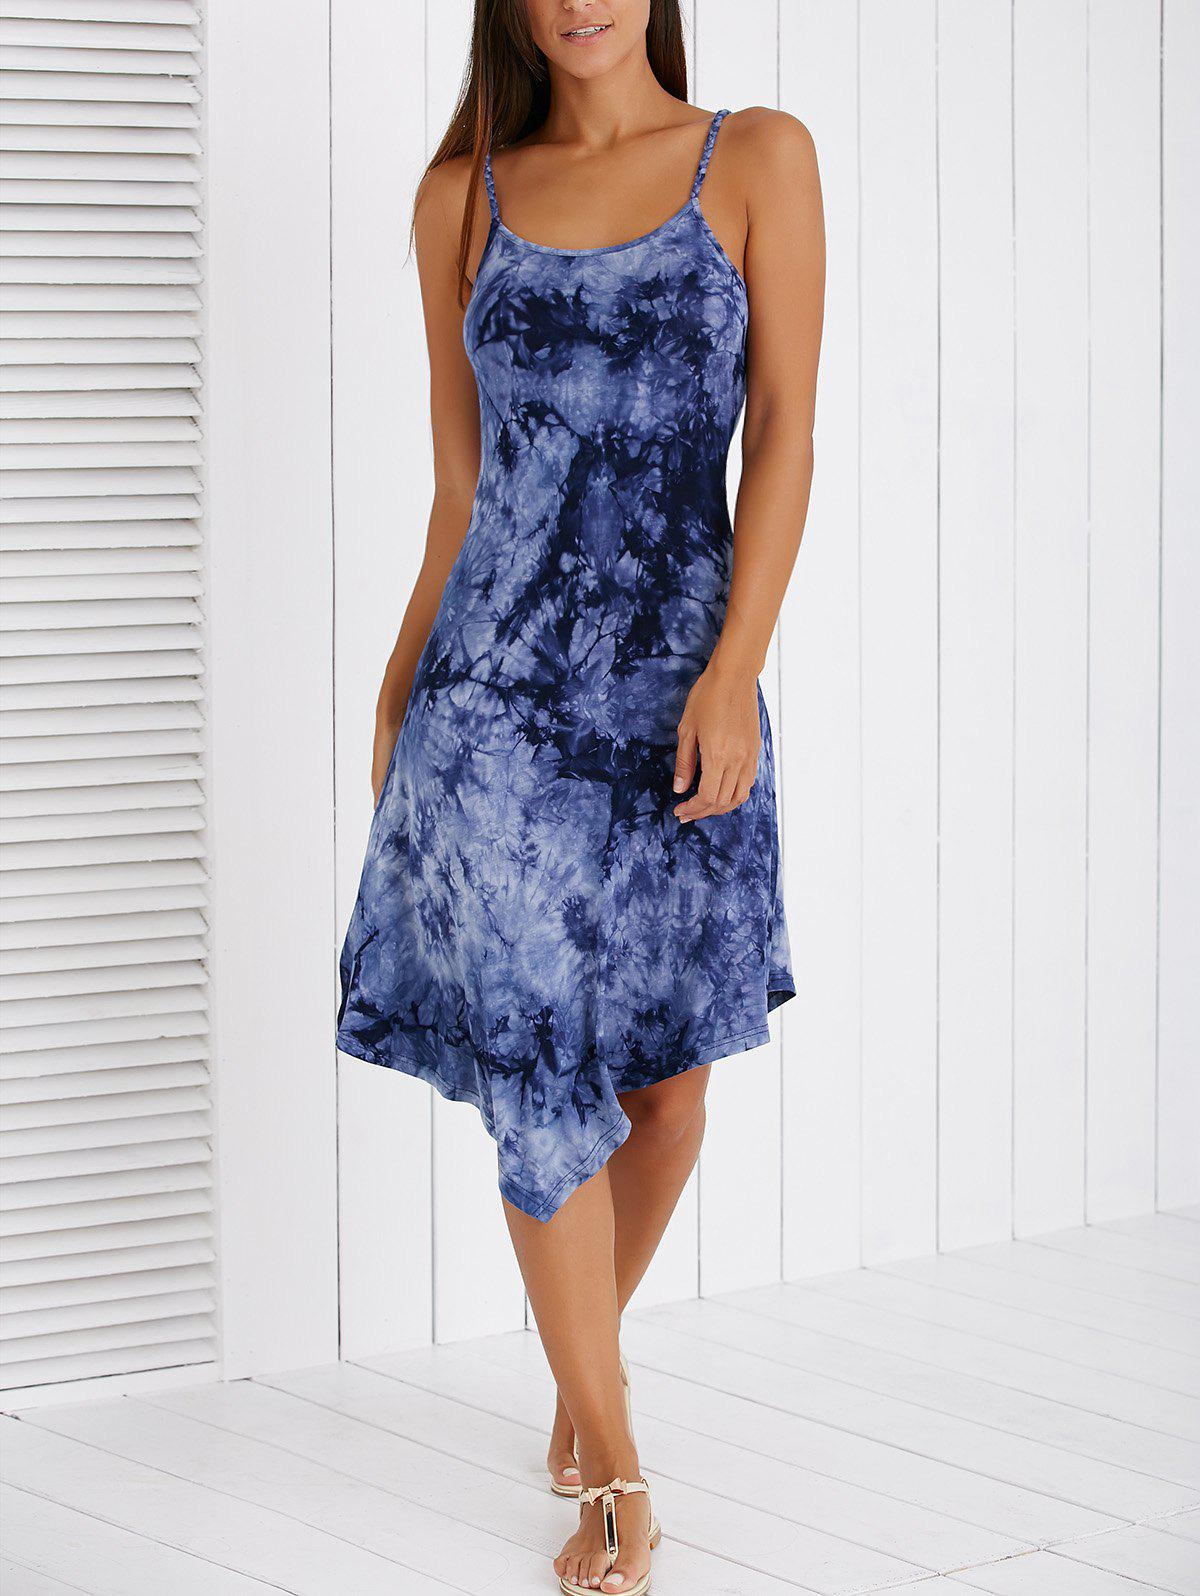 Fashionable Spaghetti Strap Ink Painting High Low Dress - COLORMIX XL